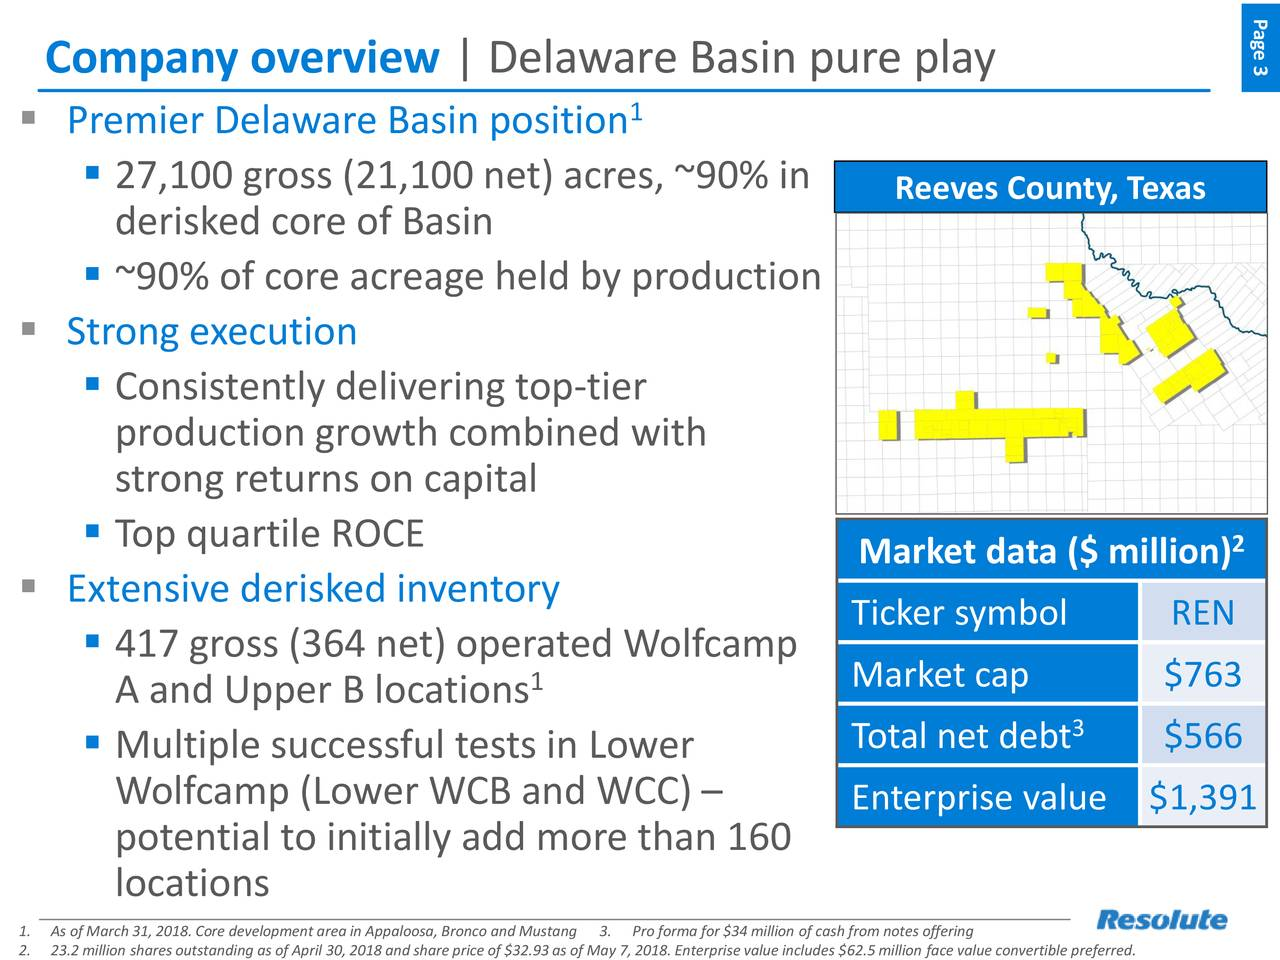 Company overview | Delaware Basin pure play 3 1 ▪ Premier Delaware Basin position ▪ 27,100 gross (21,100 net) acres, ~90% in Reeves County, Texas derisked core of Basin ▪ ~90% of core acreage held by production ▪ Strong execution ▪ Consistently delivering top-tier production growth combined with strong returns on capital ▪ Top quartile ROCE Market data ($ million) 2 ▪ Extensive derisked inventory ▪ 417 gross (364 net) operated Wolfcamp Ticker symbol REN 1 Market cap $763 A and Upper B locations ▪ Multiple successful tests in Lower Total net debt 3 $566 Wolfcamp (Lower WCB and WCC) – Enterprise value $1,391 potential to initially add more than 160 locations 1.As of March 31, 2018.Core development3.rPro forma for $34 million of cash from notes offering